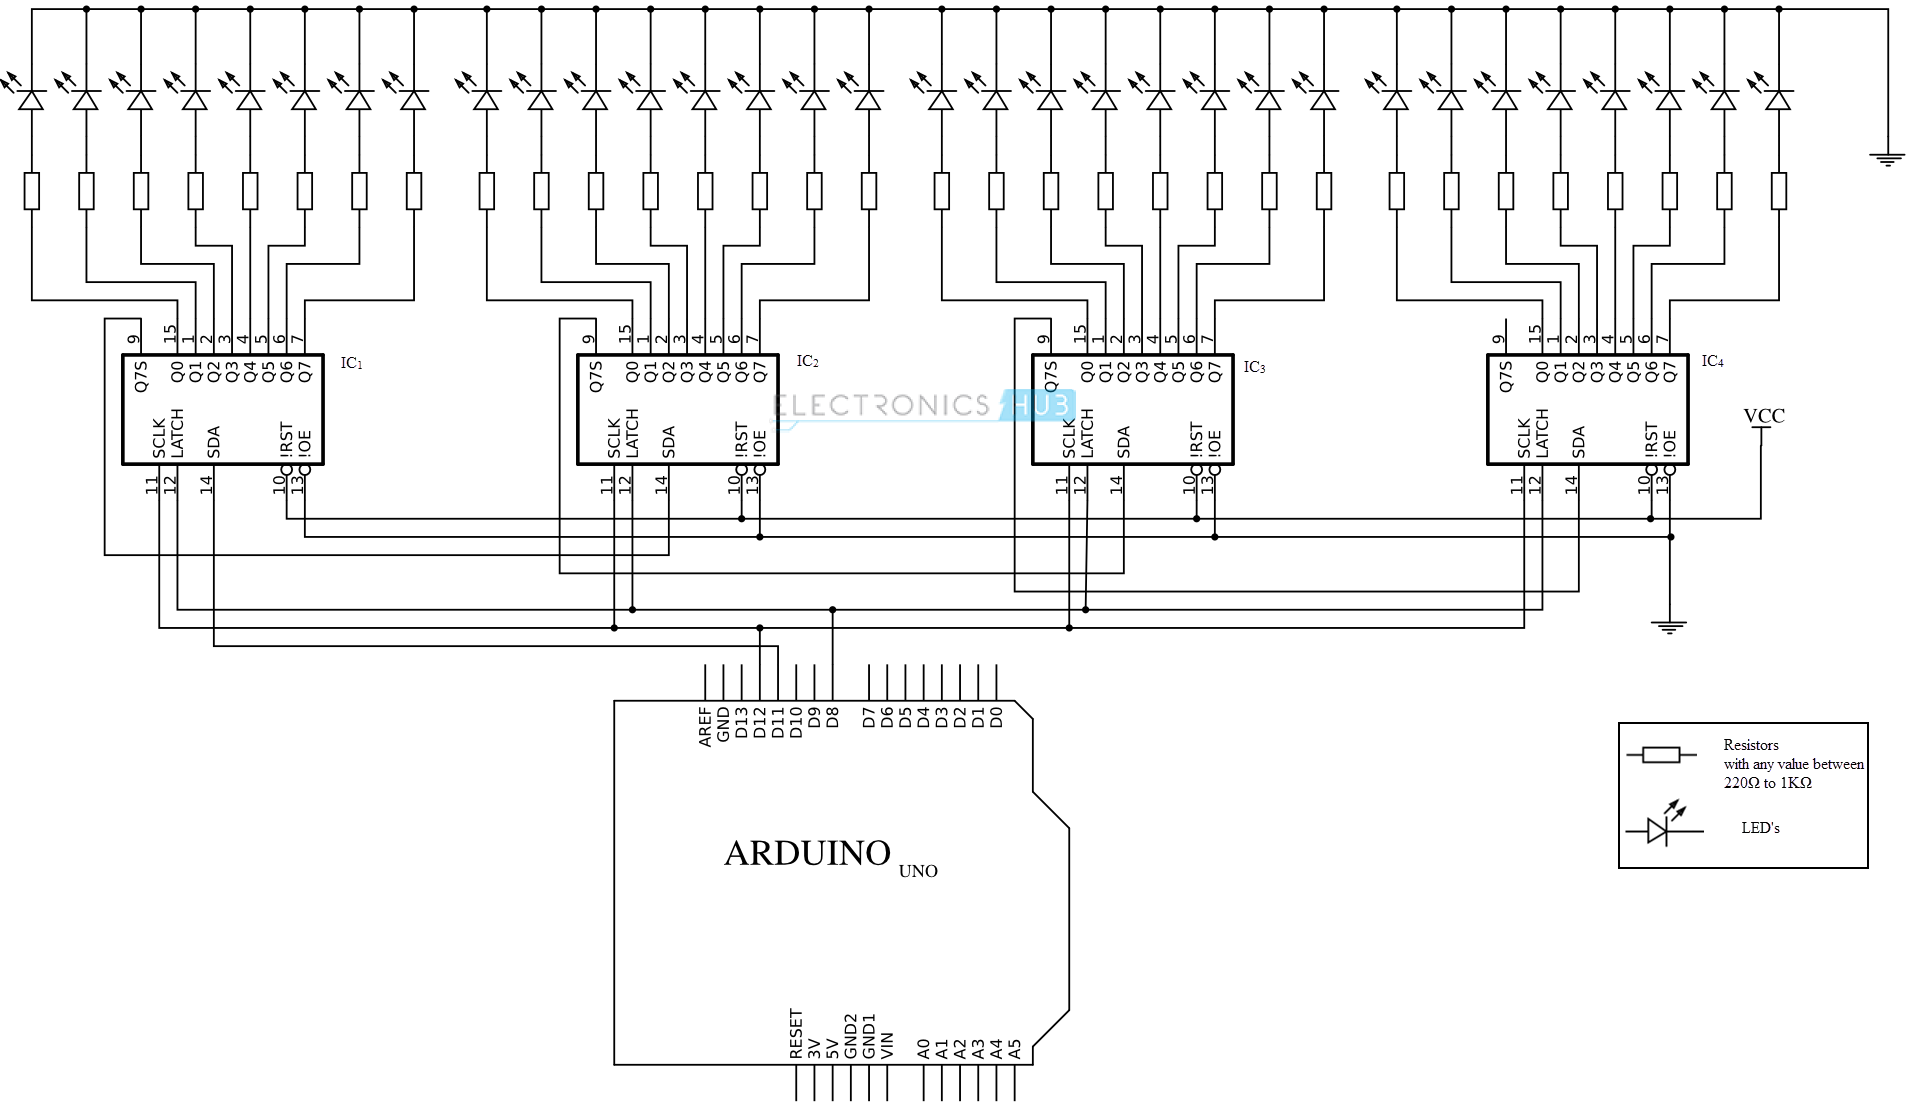 multiple shift registers on arduino